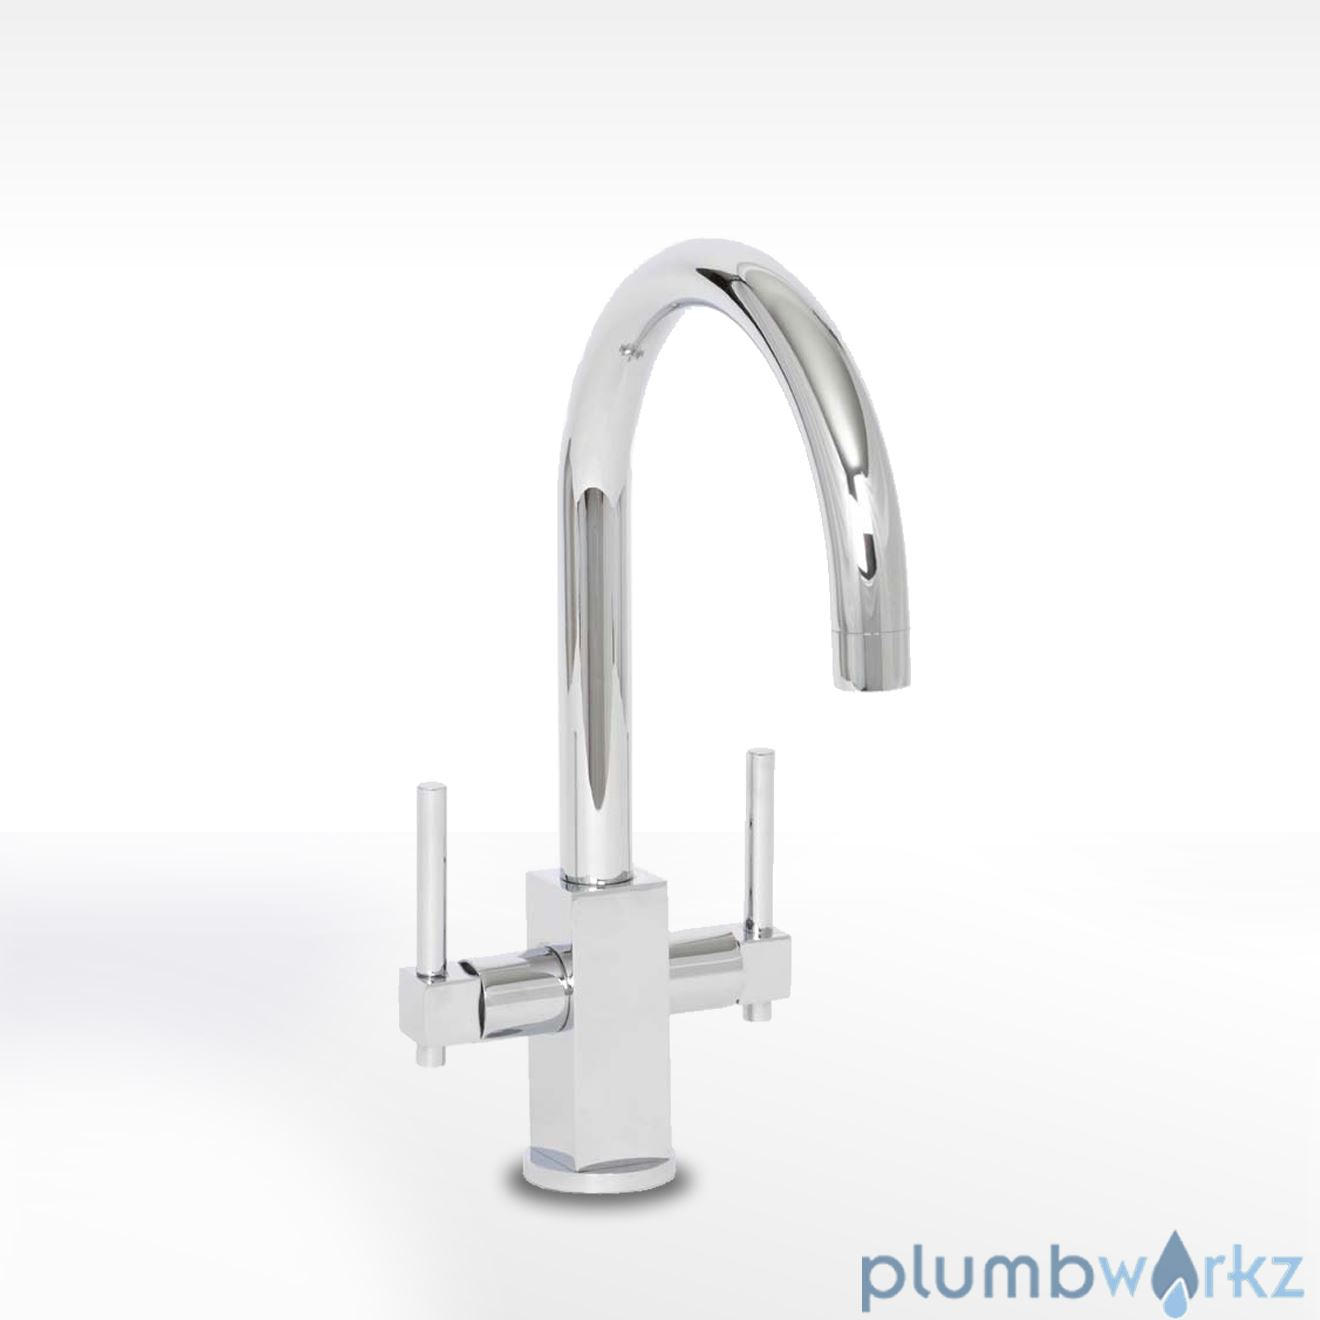 Crail Twin Lever Mixer Tap